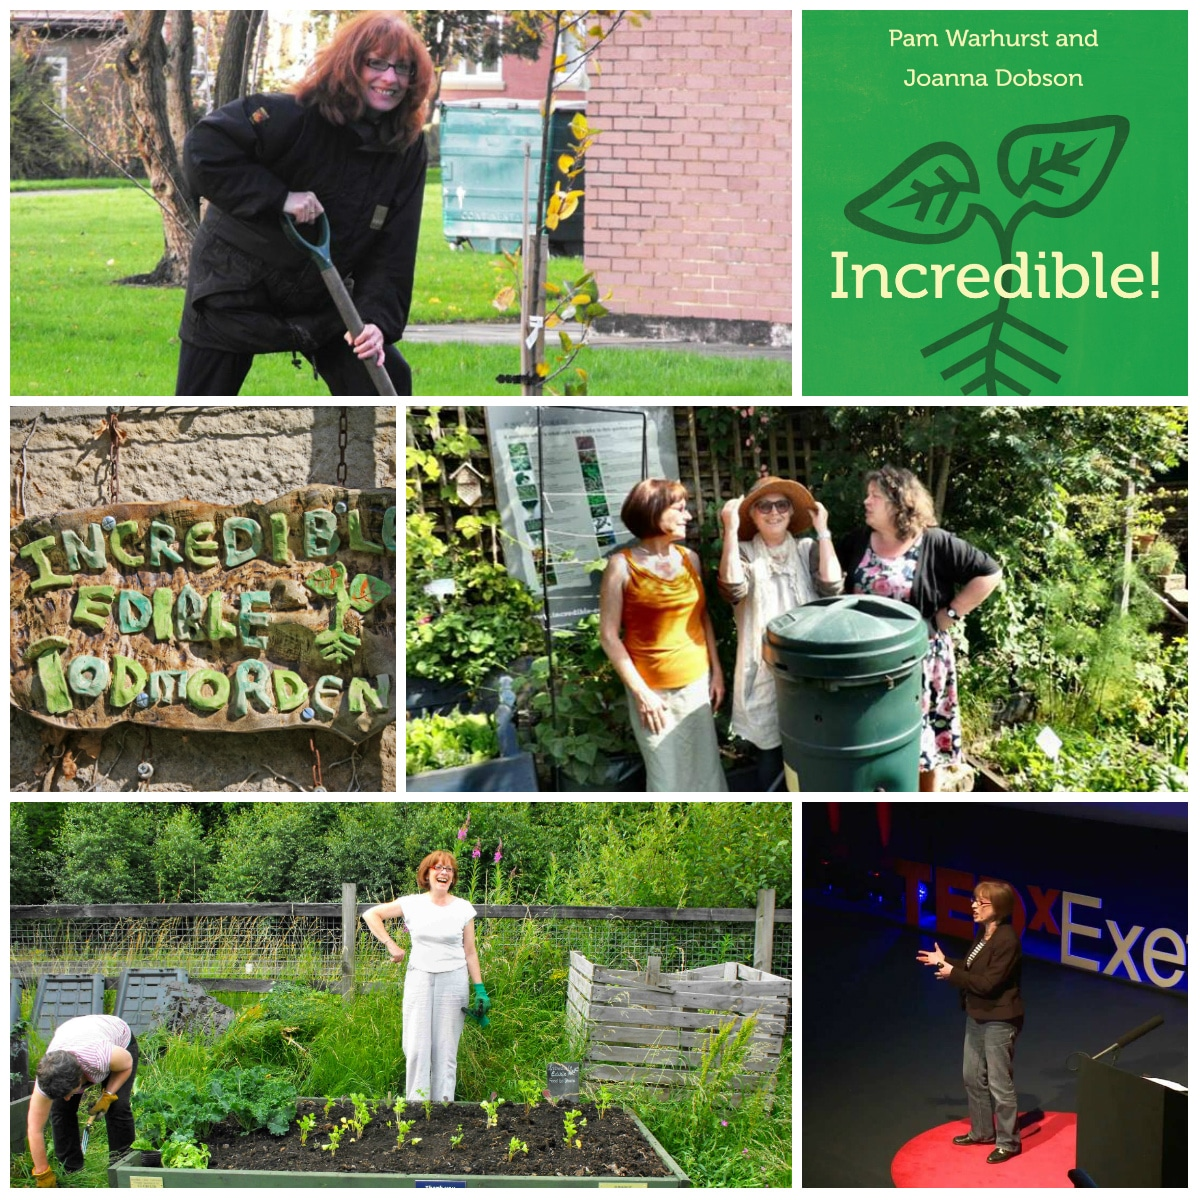 Pam-Warhurst-incredible-edible-todmorden